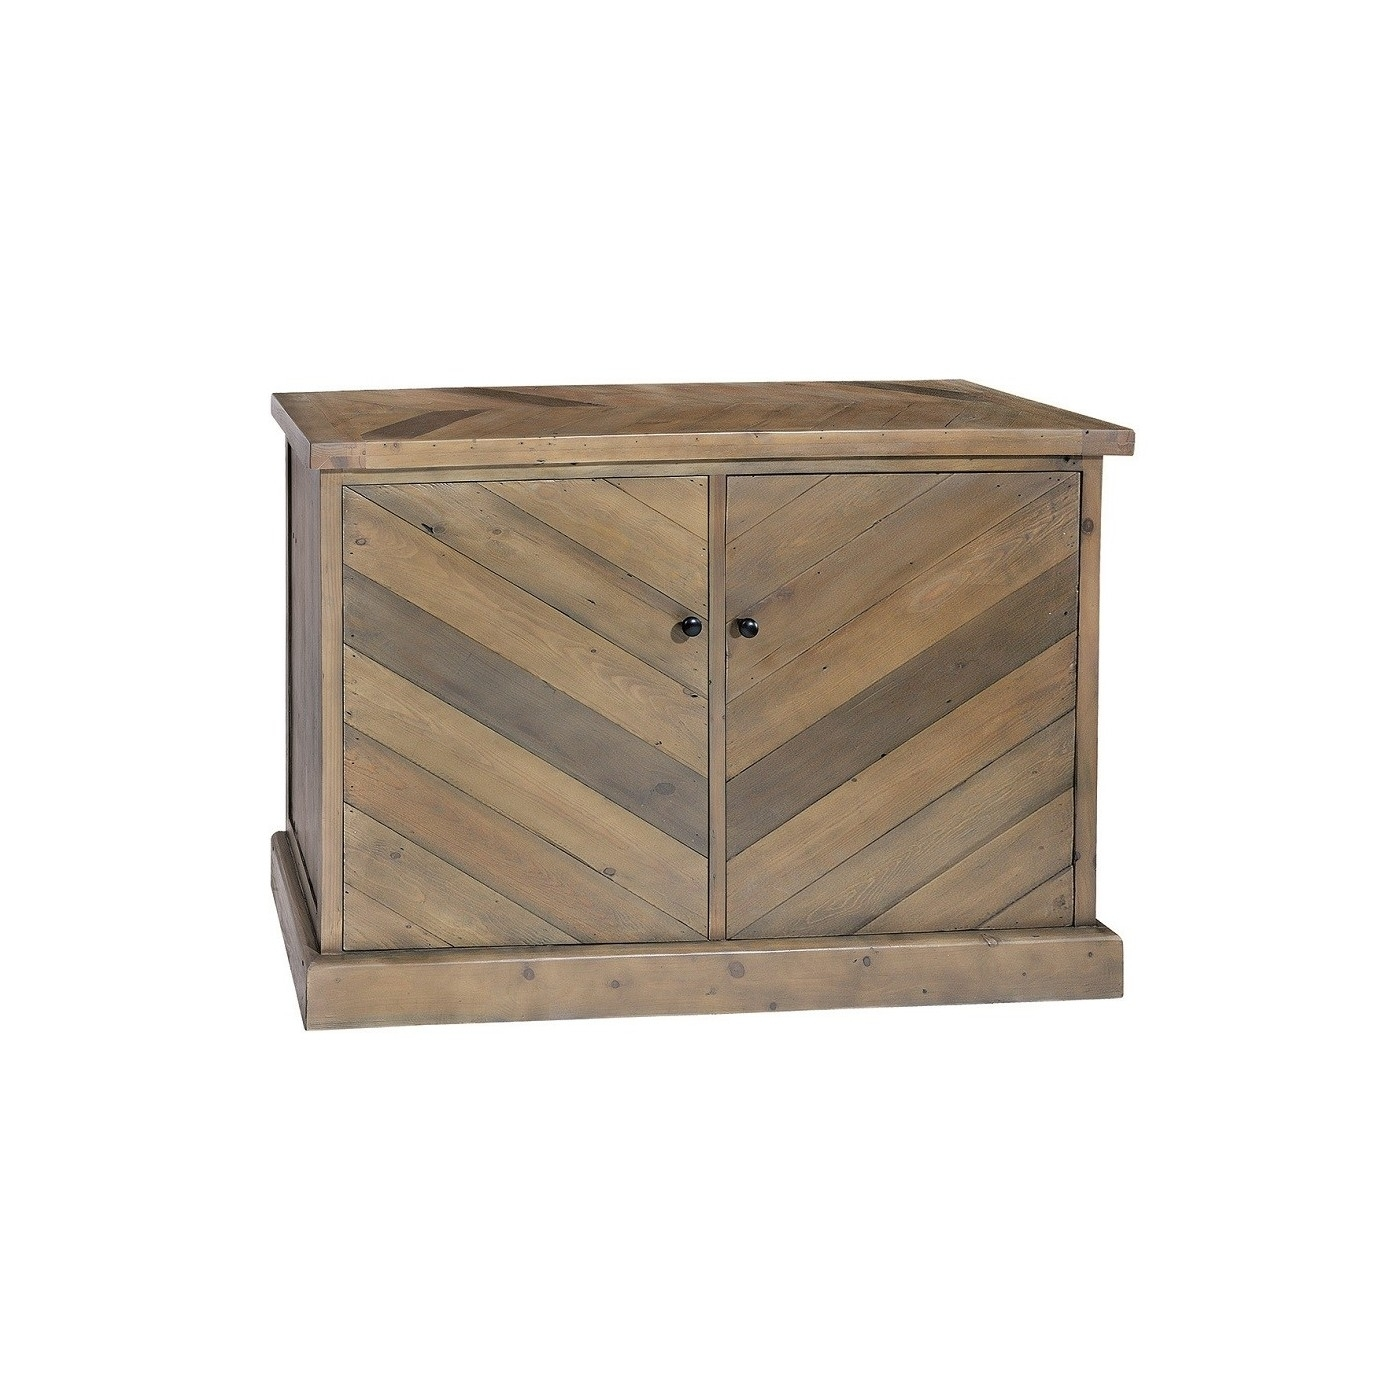 Parquet Reclaimed Pine Small Sideboard | Bedford In Most Current Parquet Sideboards (#14 of 20)